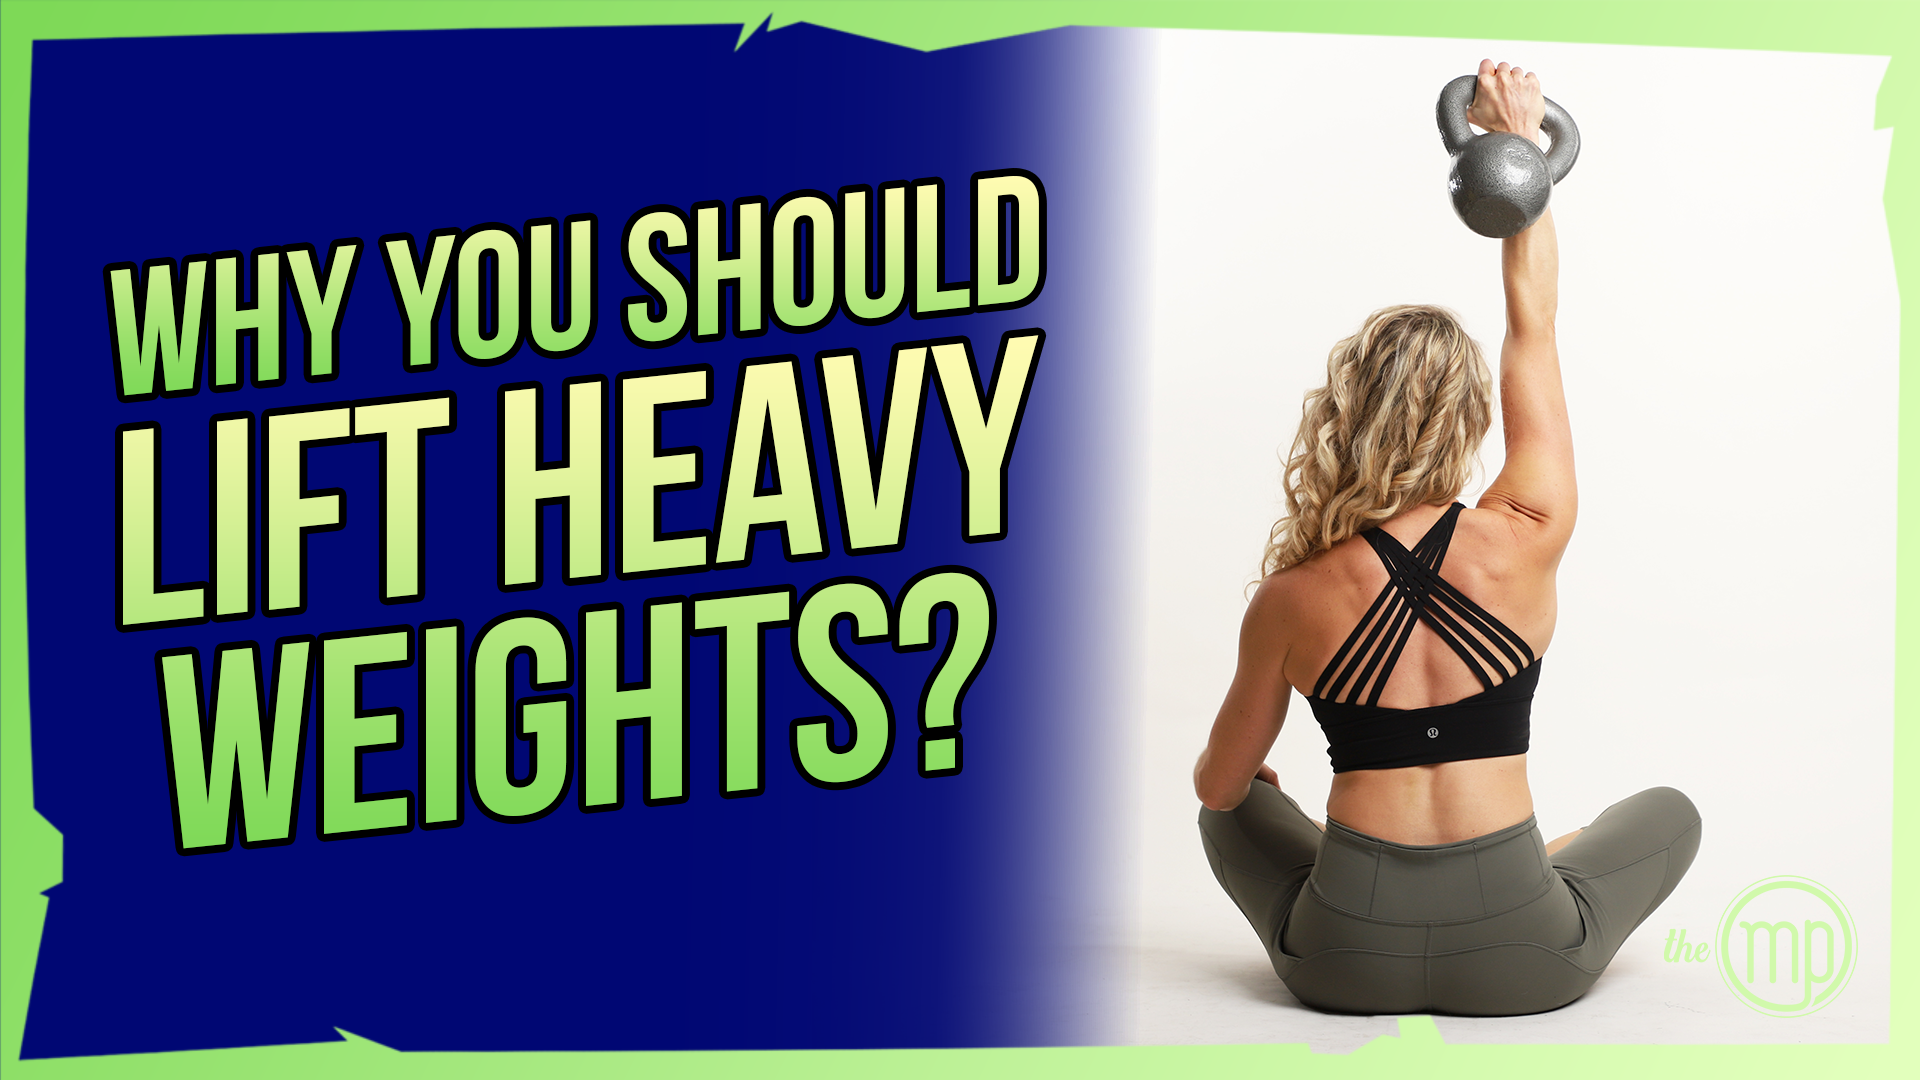 Why should you lift heavy weights